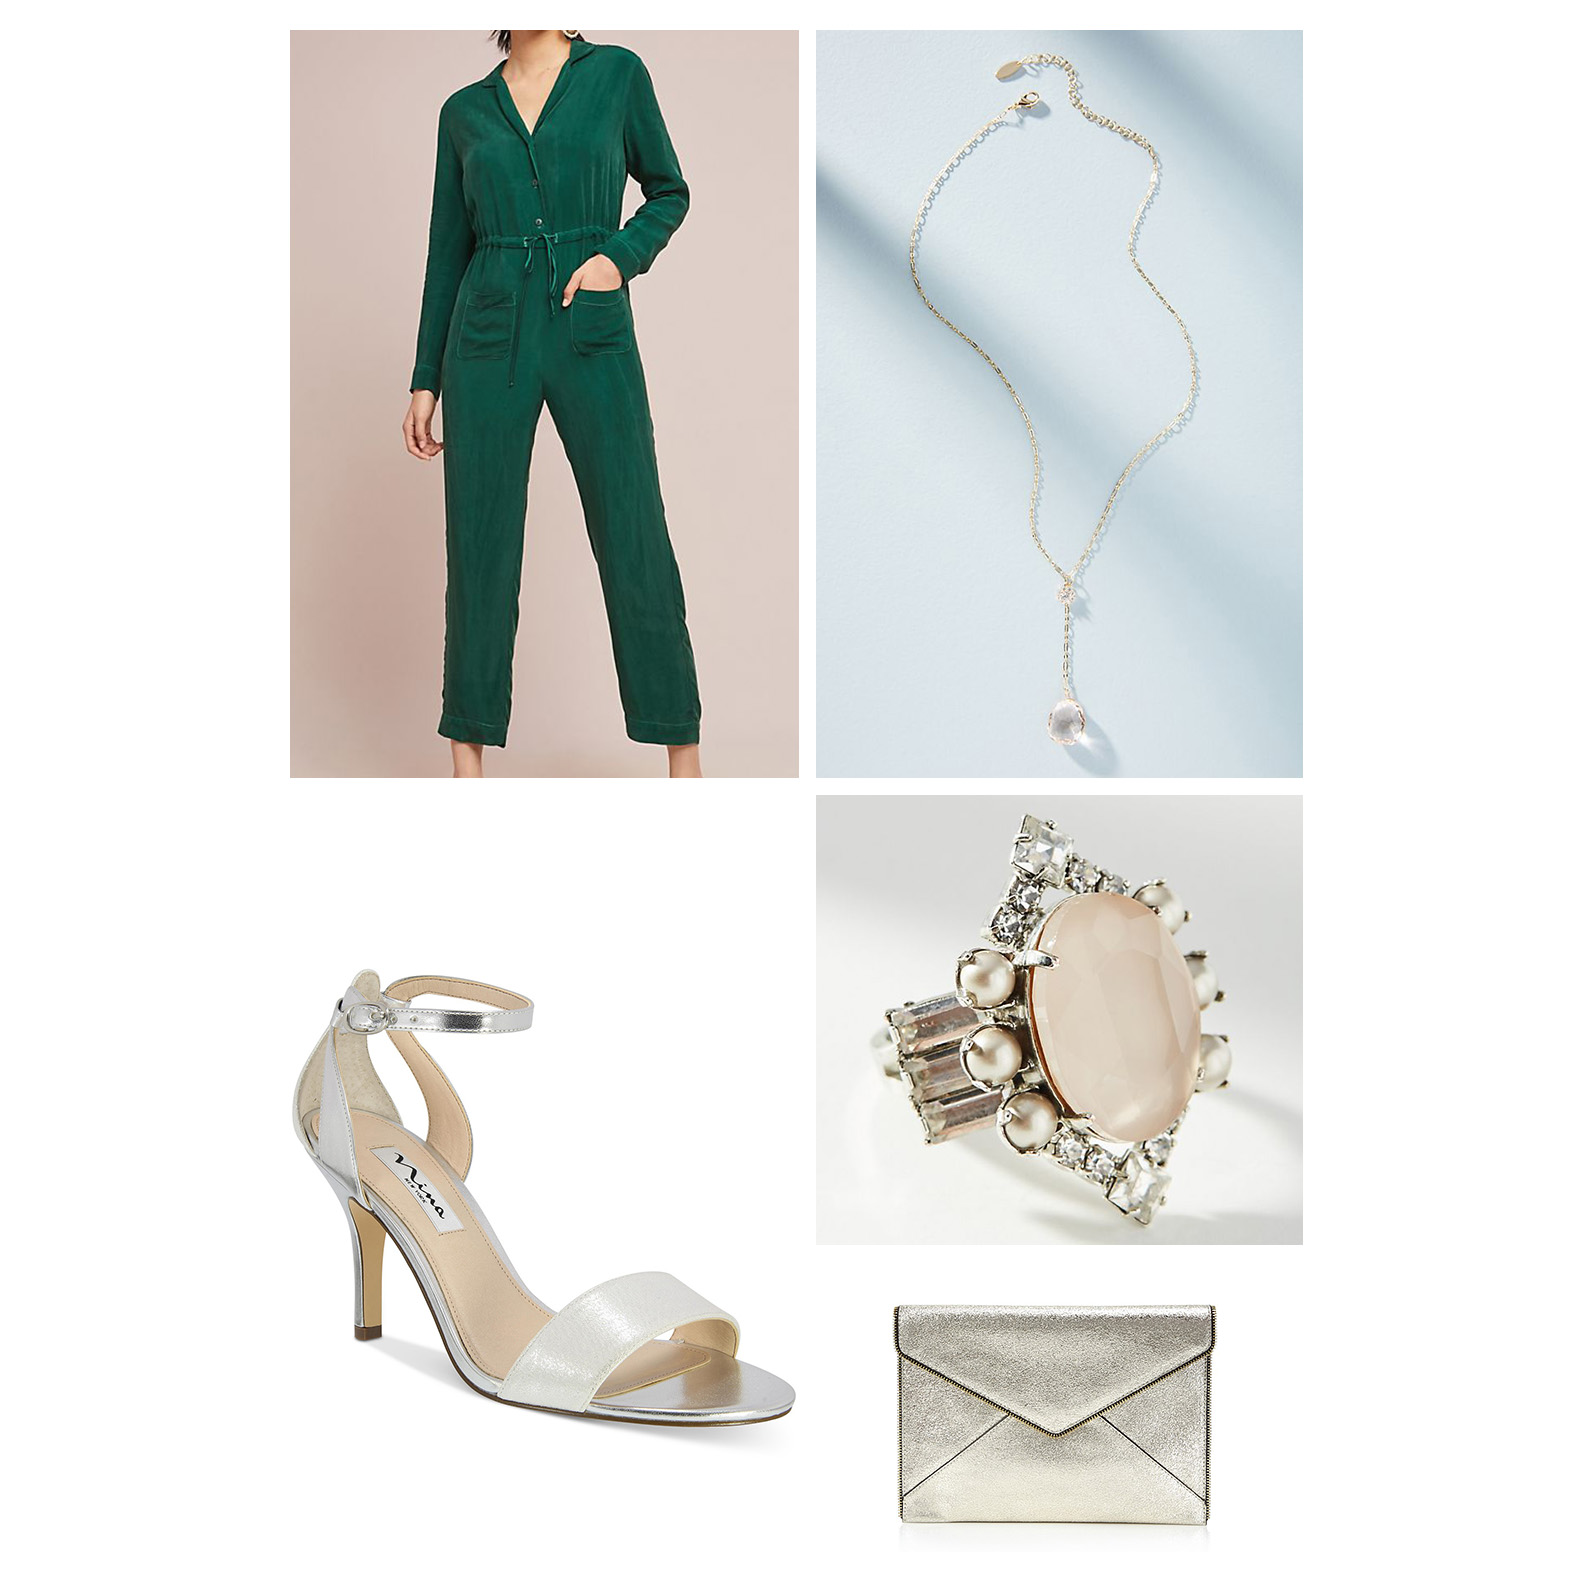 fall-autumn-outfit-dinner-2018-fashion-ideas-green-jumpsuit-necklace-silver-ring-cocktail-heels-clutch-night-out-dressy.jpg